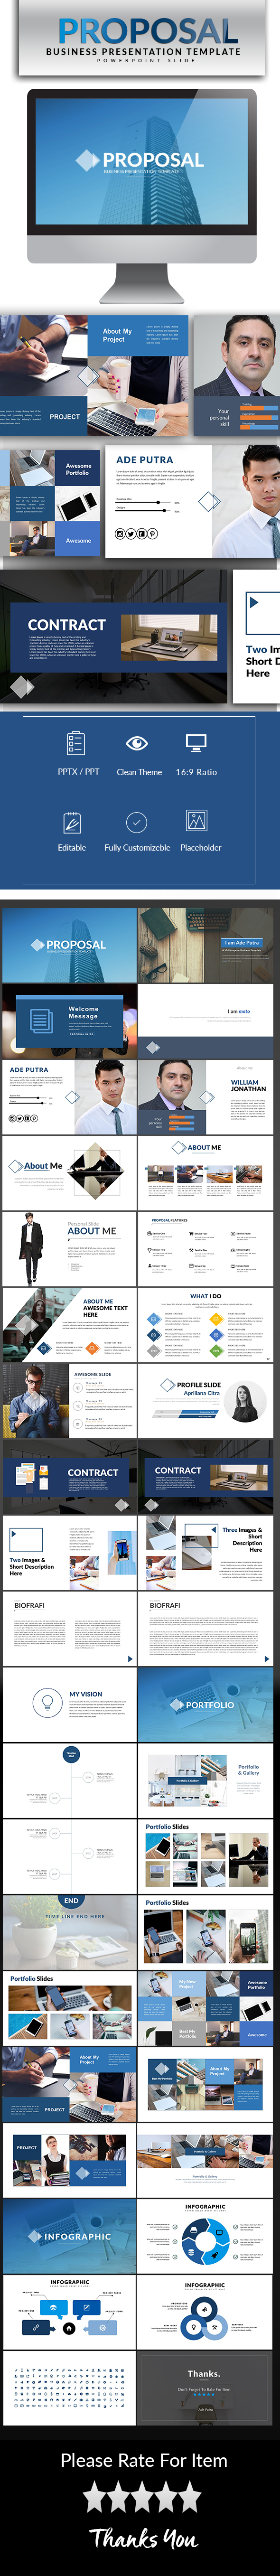 Proposal Powerpoint Template - PowerPoint Templates Presentation Templates